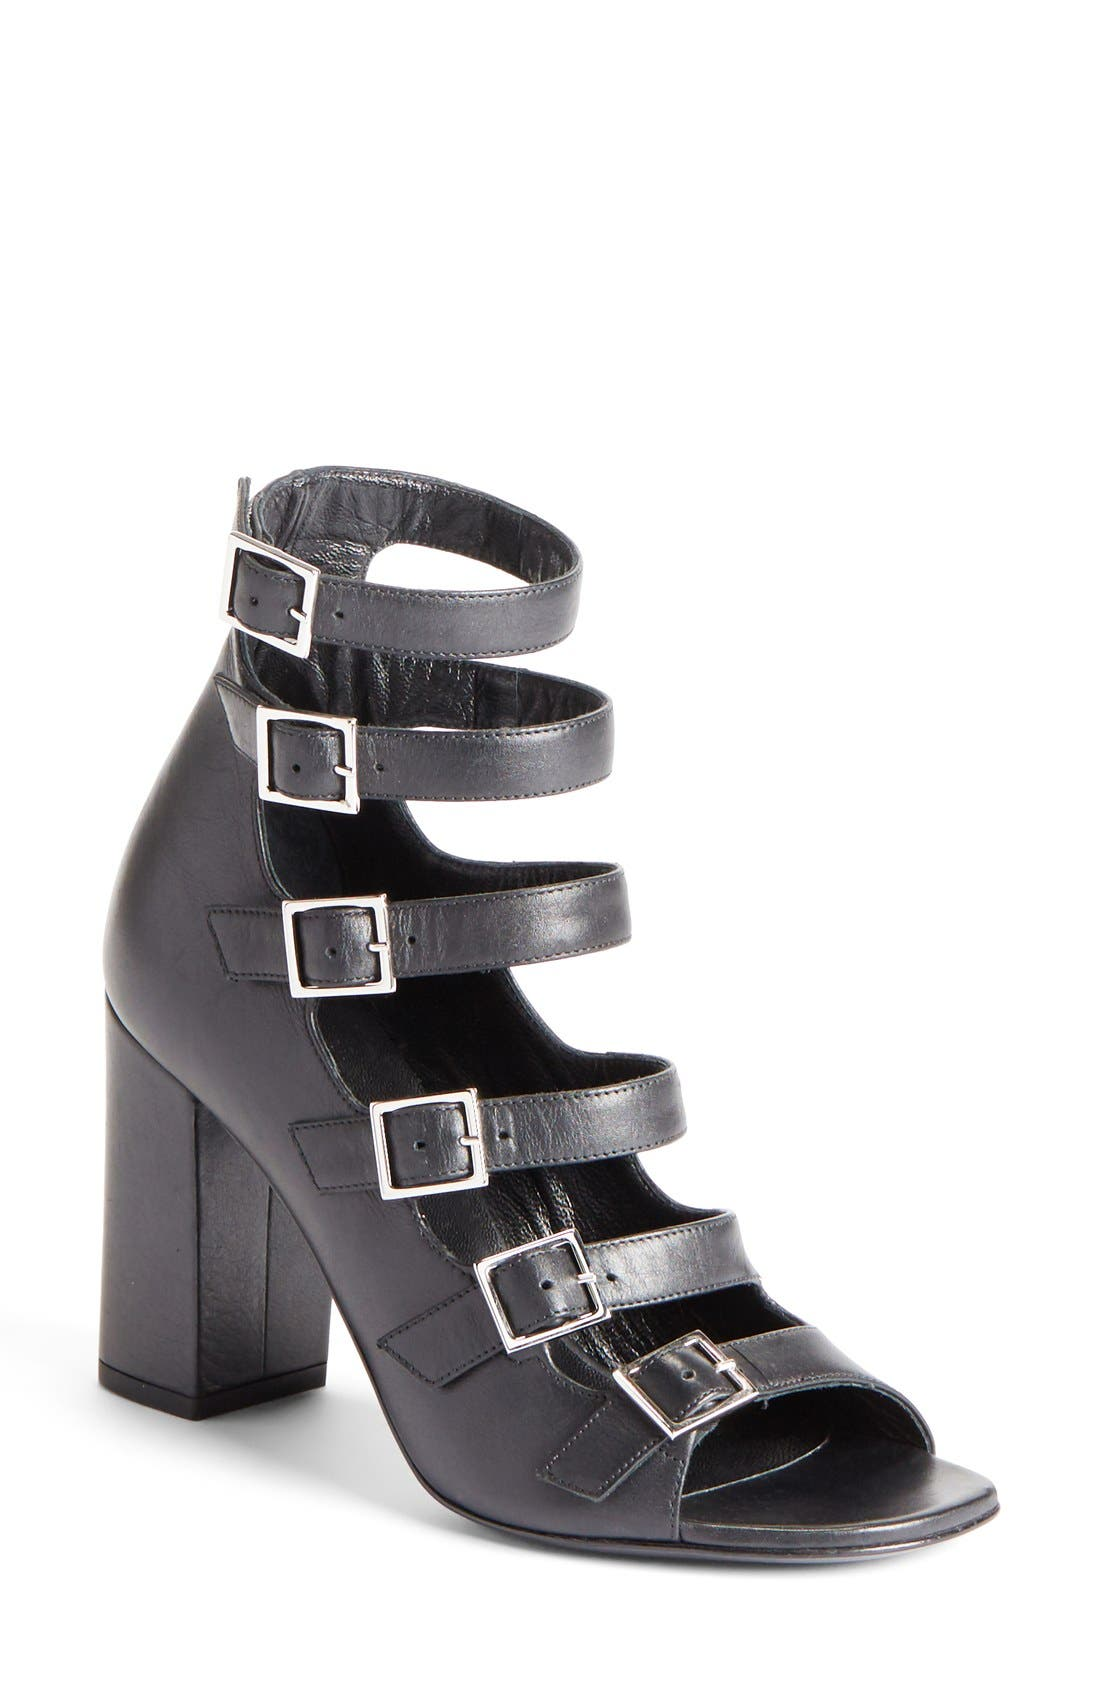 SAINT LAURENT 'Babies' Buckle Strap Sandal